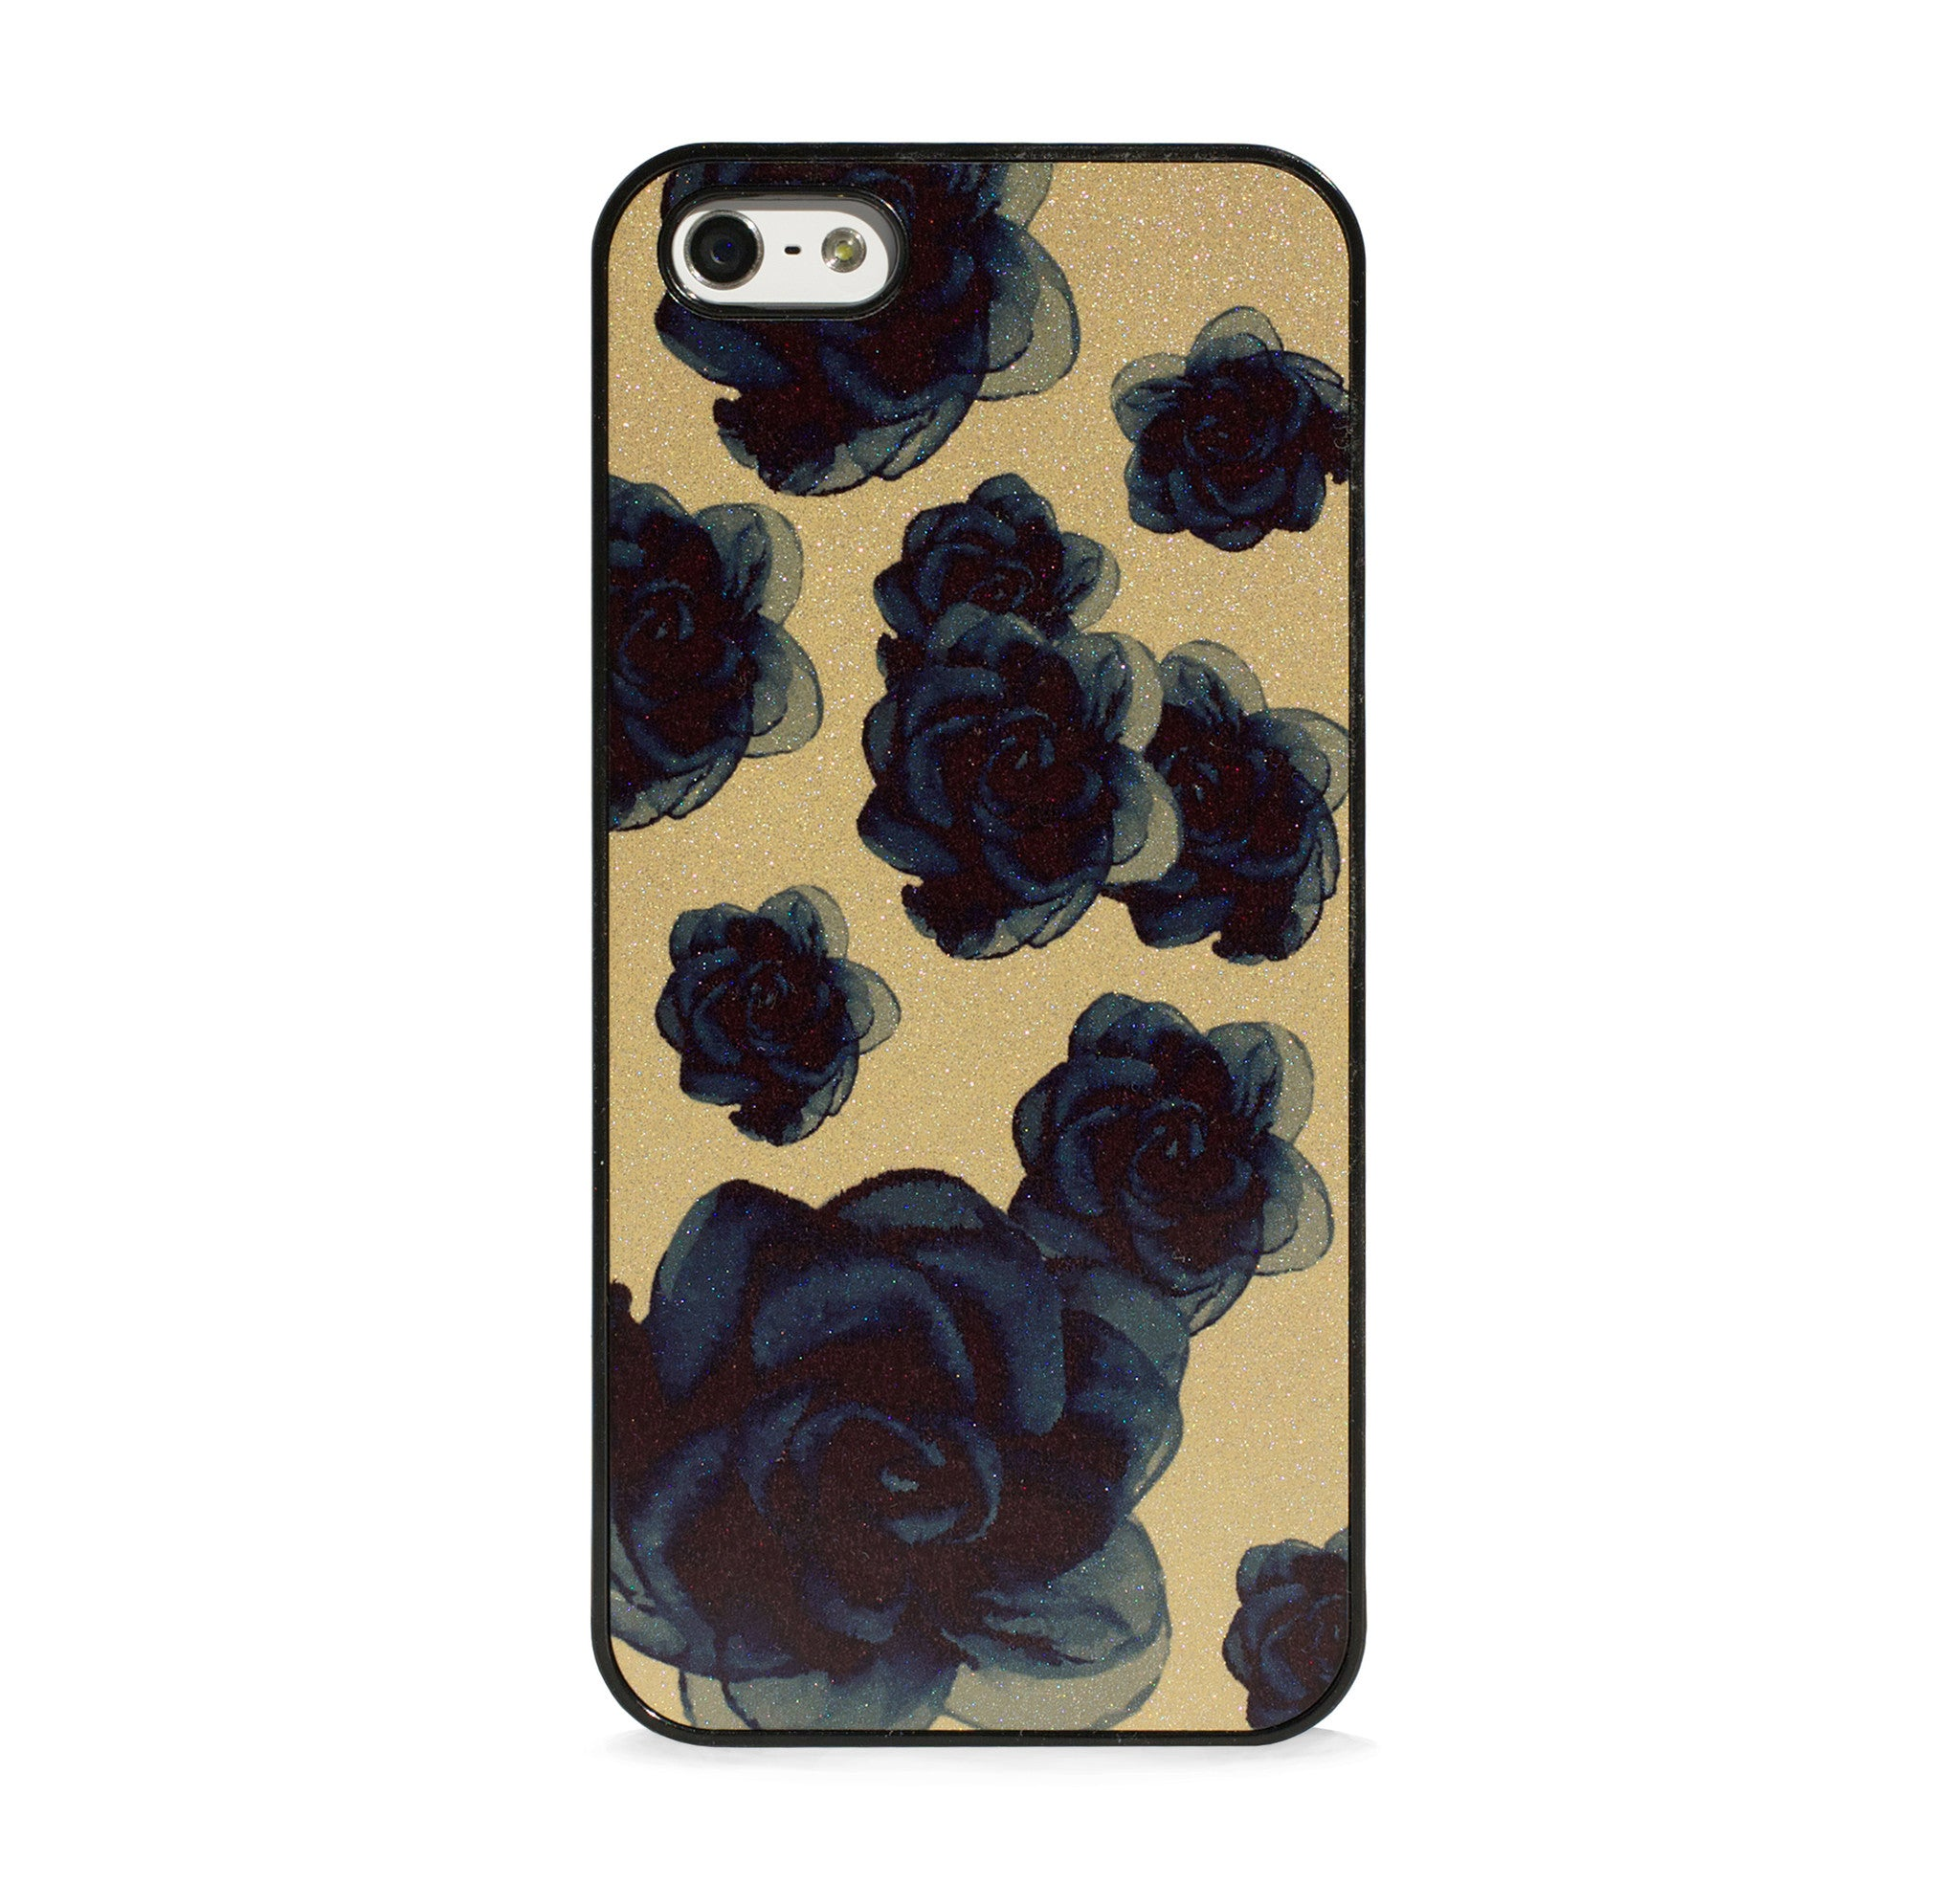 GLITTER GOLD FLOWERS FOR IPHONE 5/5S, IPHONE SE